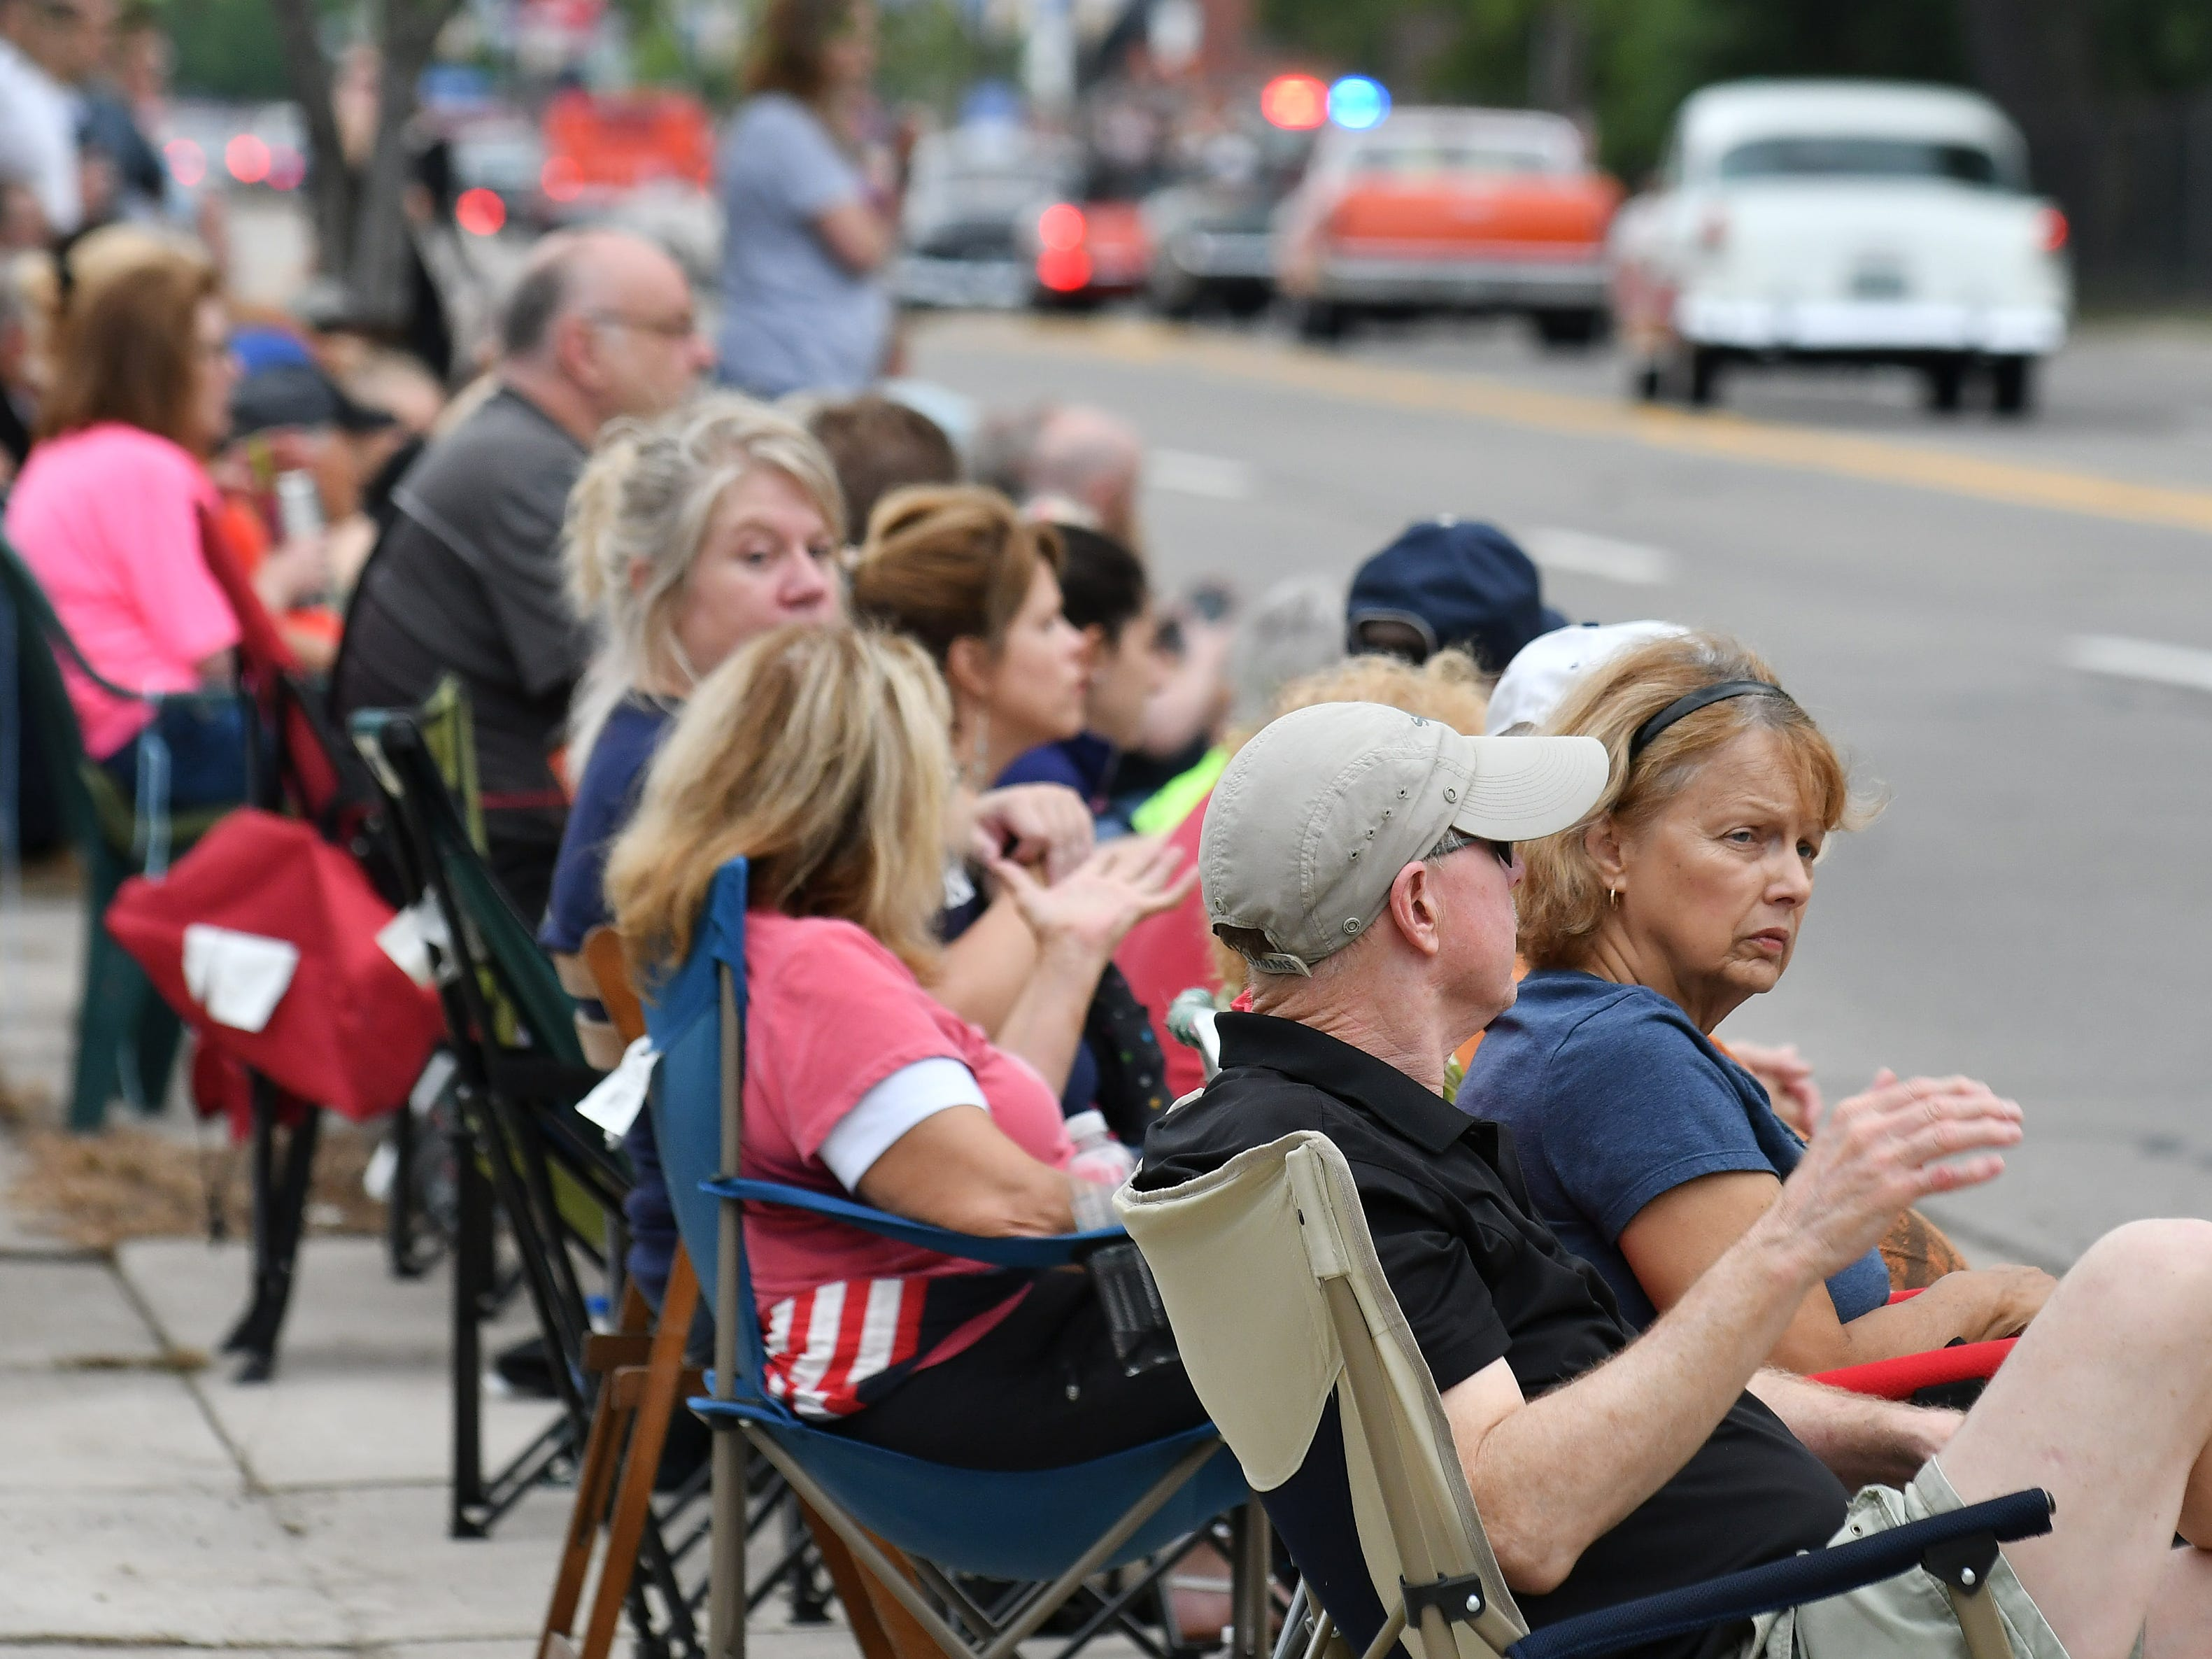 At end, Tom and Sue Zellman of Napoleon watch the Berkley CruiseFest Classic Car Parade.